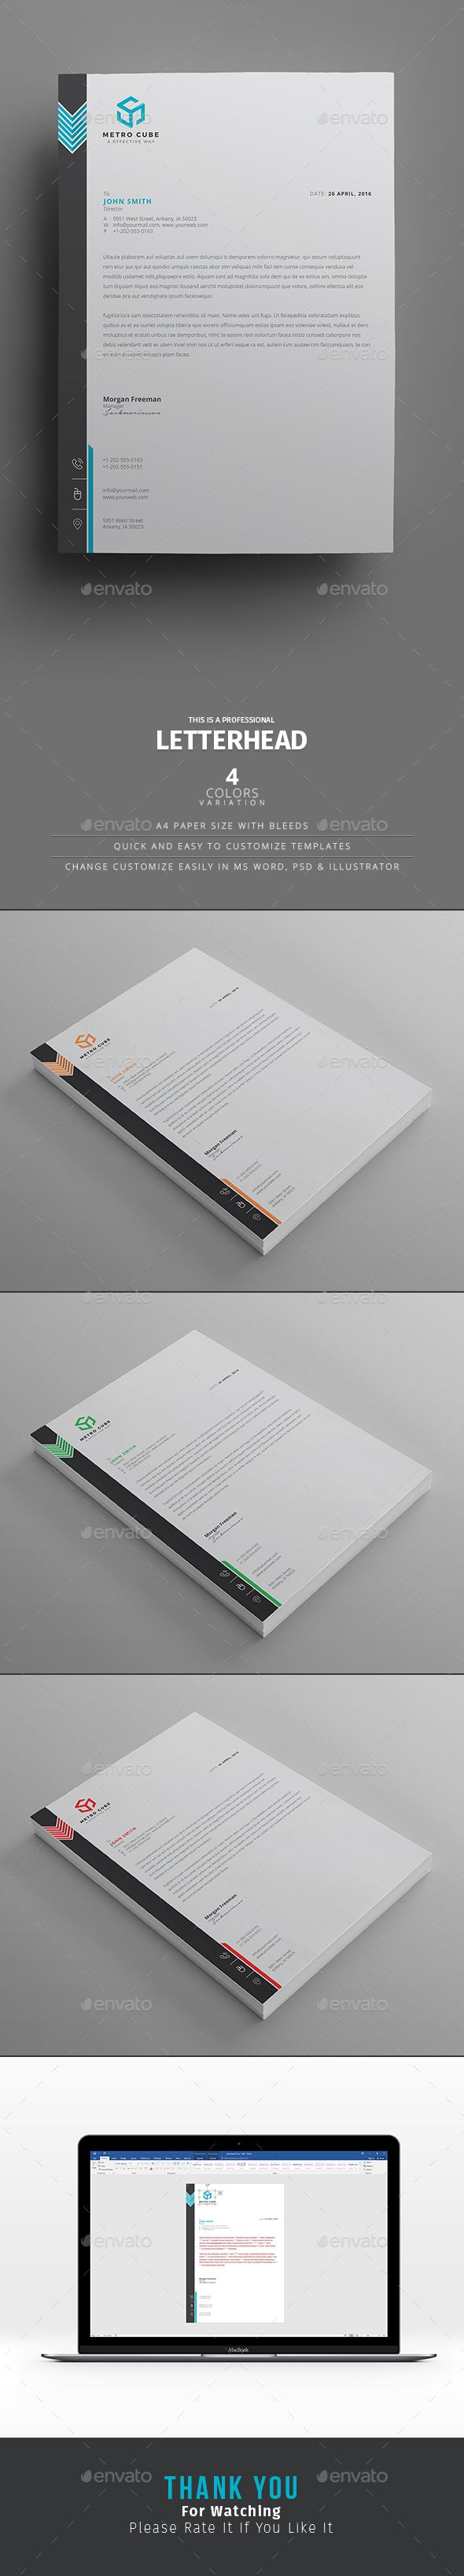 #LetterheadTemplateDesign- print ready, 300 DPI. PSD, Ai and MS Word versions with 5 different colors. Download http://graphicriver.net/item/letterhead/16130312?ref=themedevisers